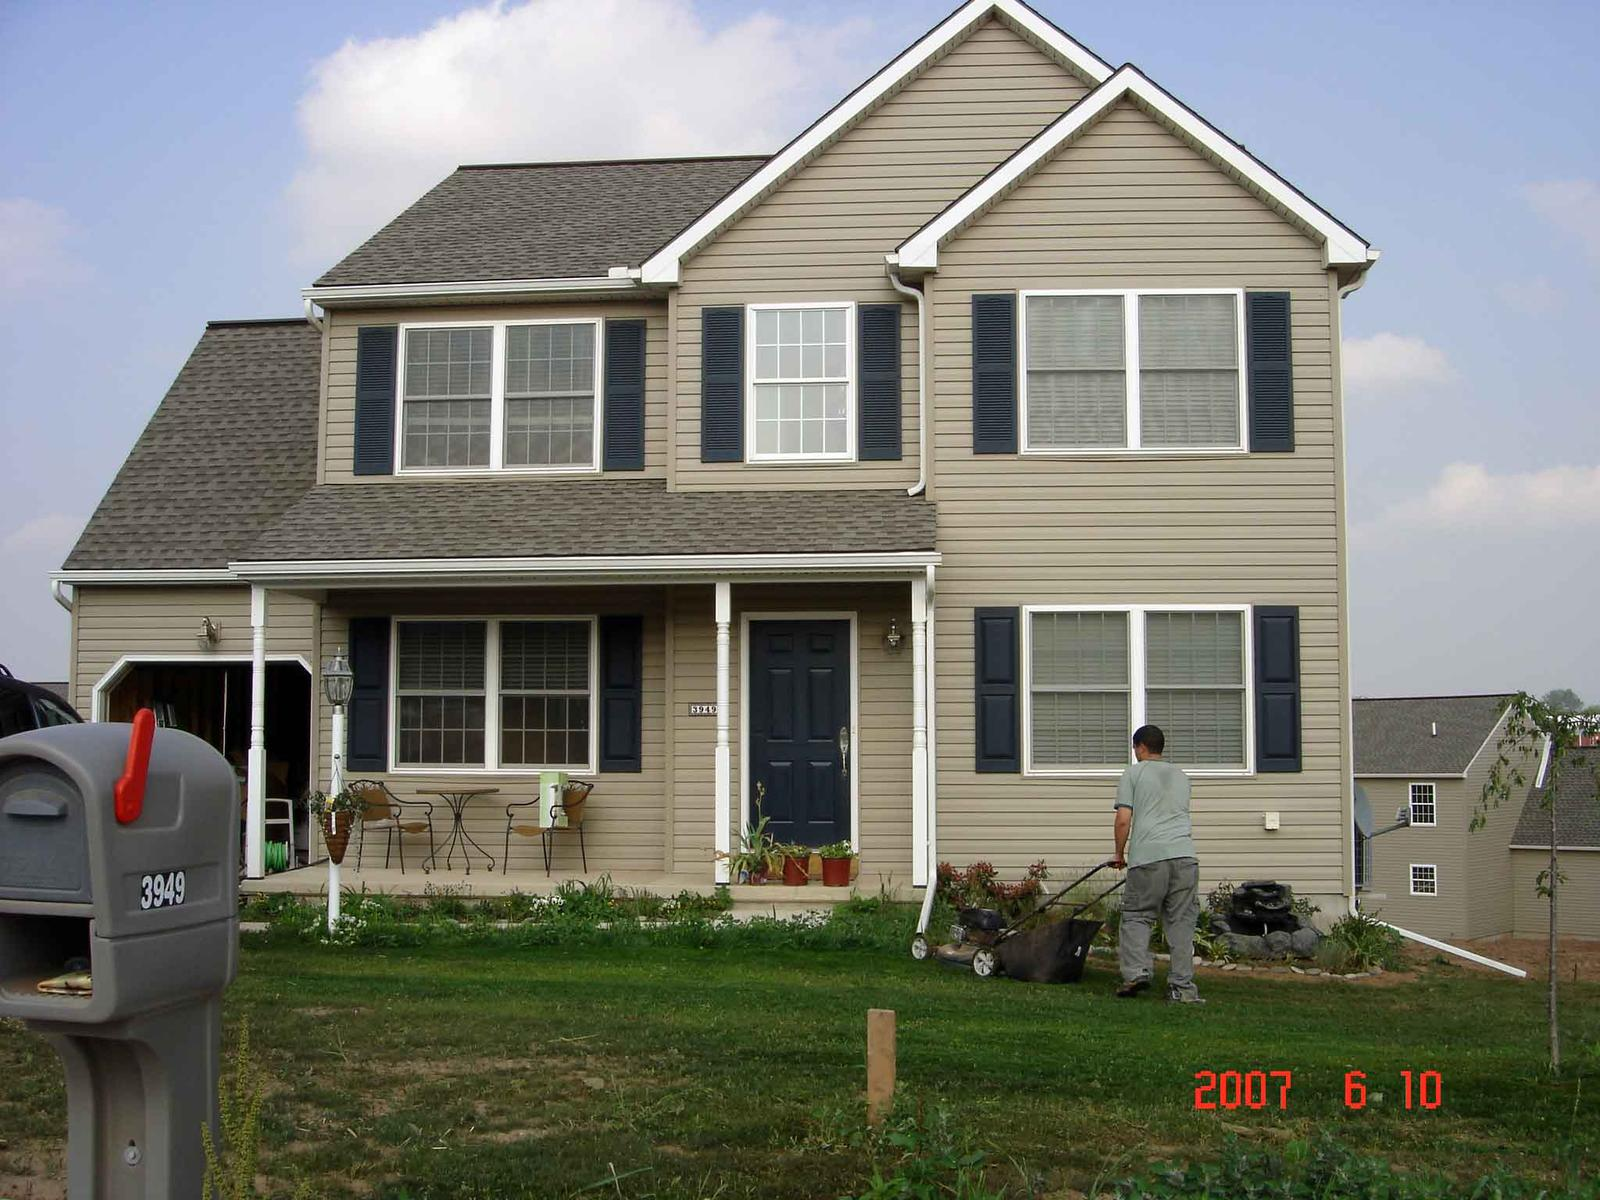 New house for sale in dover york area 208 for House for sale pictures